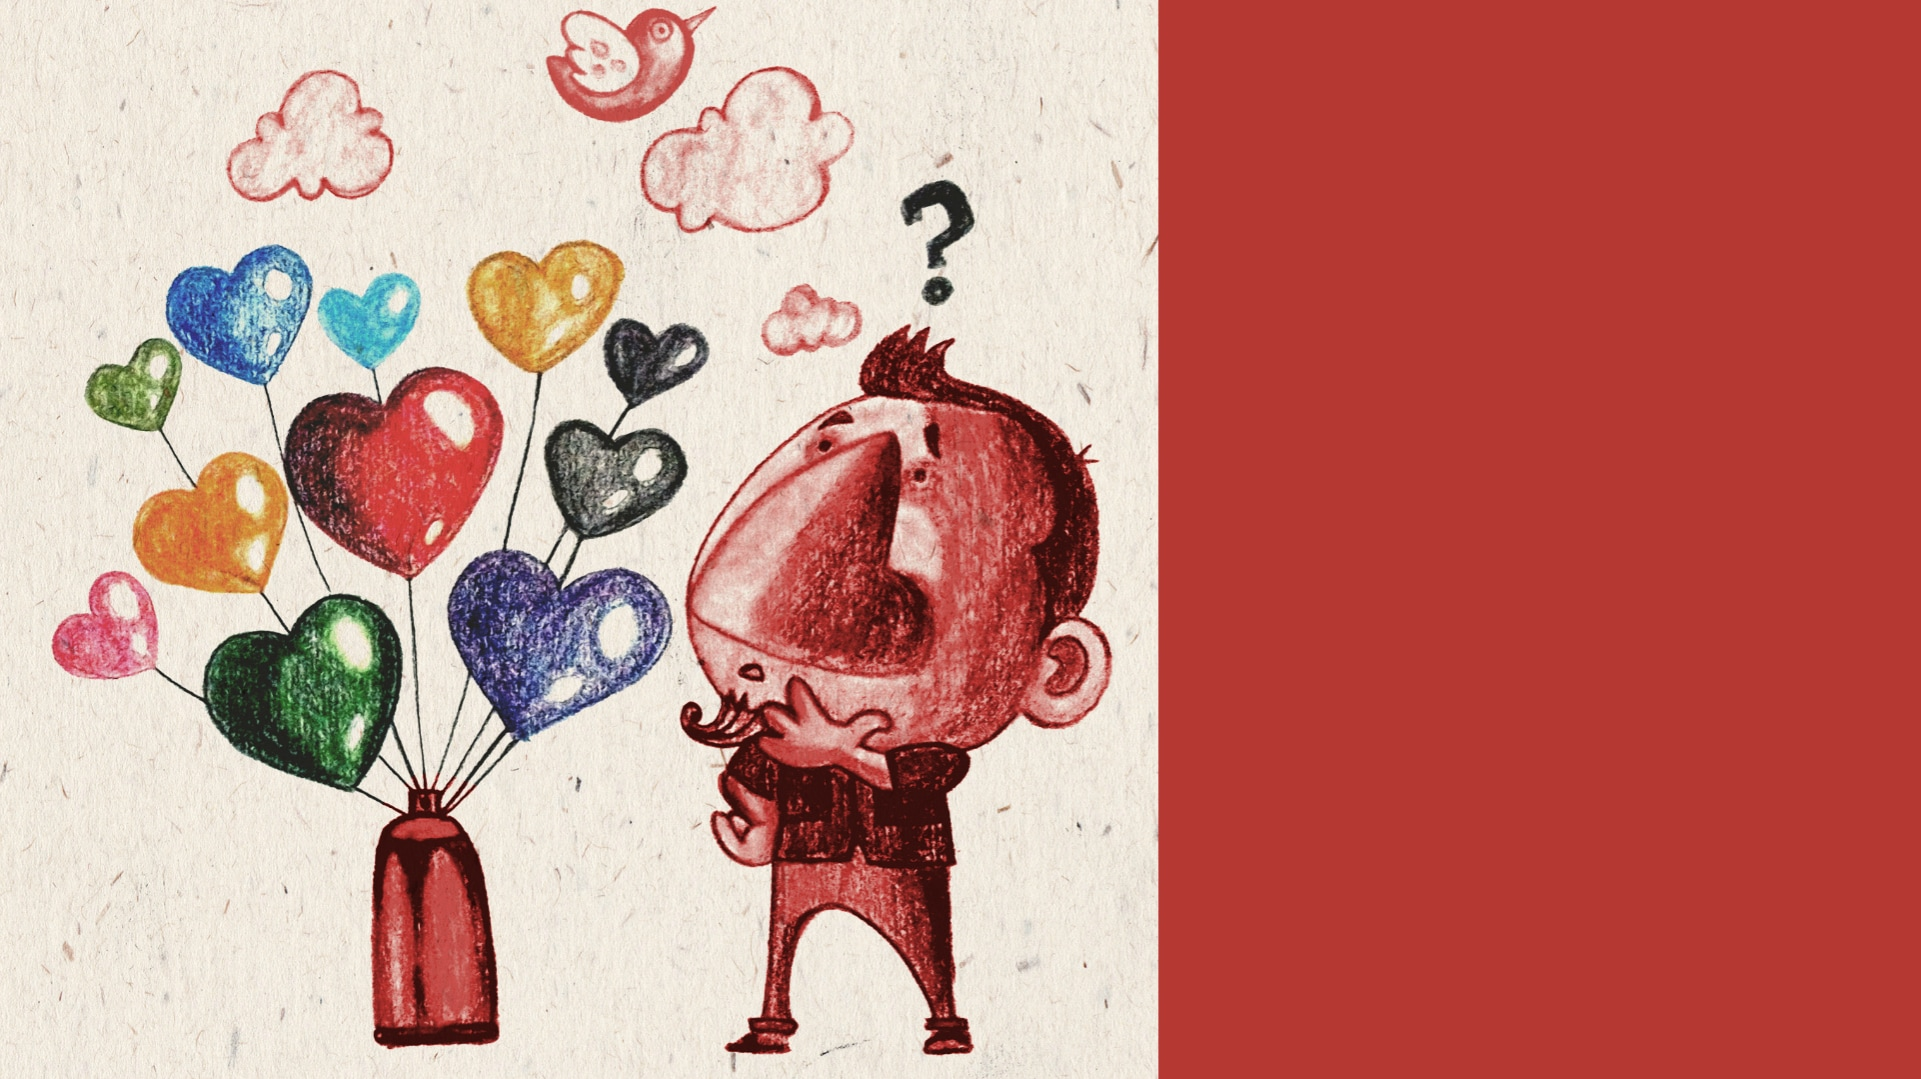 What we talk about, when we talk about love